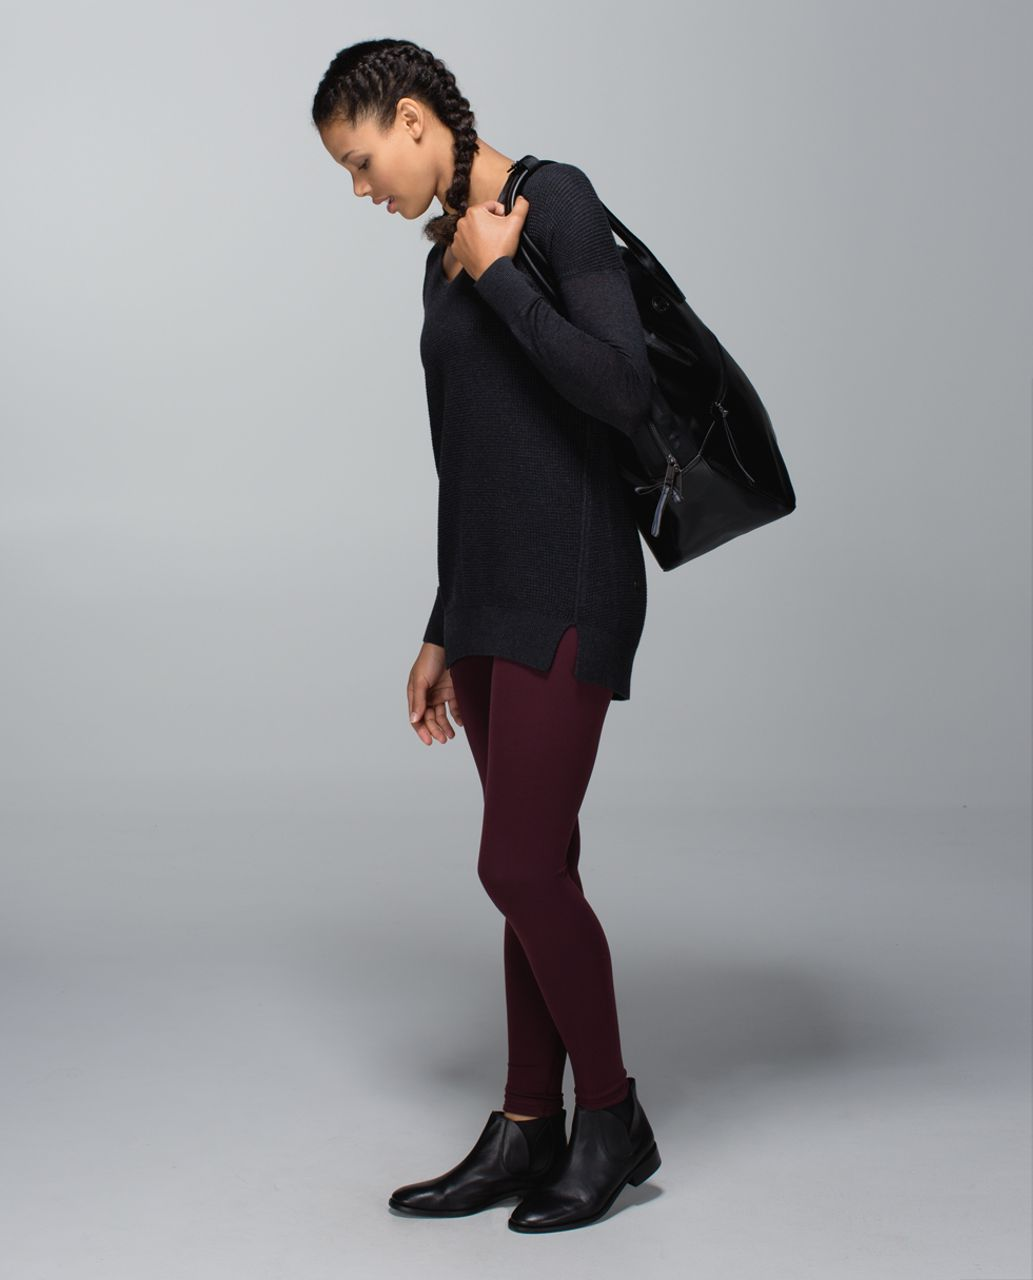 Lululemon Wunder Under Pant (Reversible) - Bordeaux Drama / Black